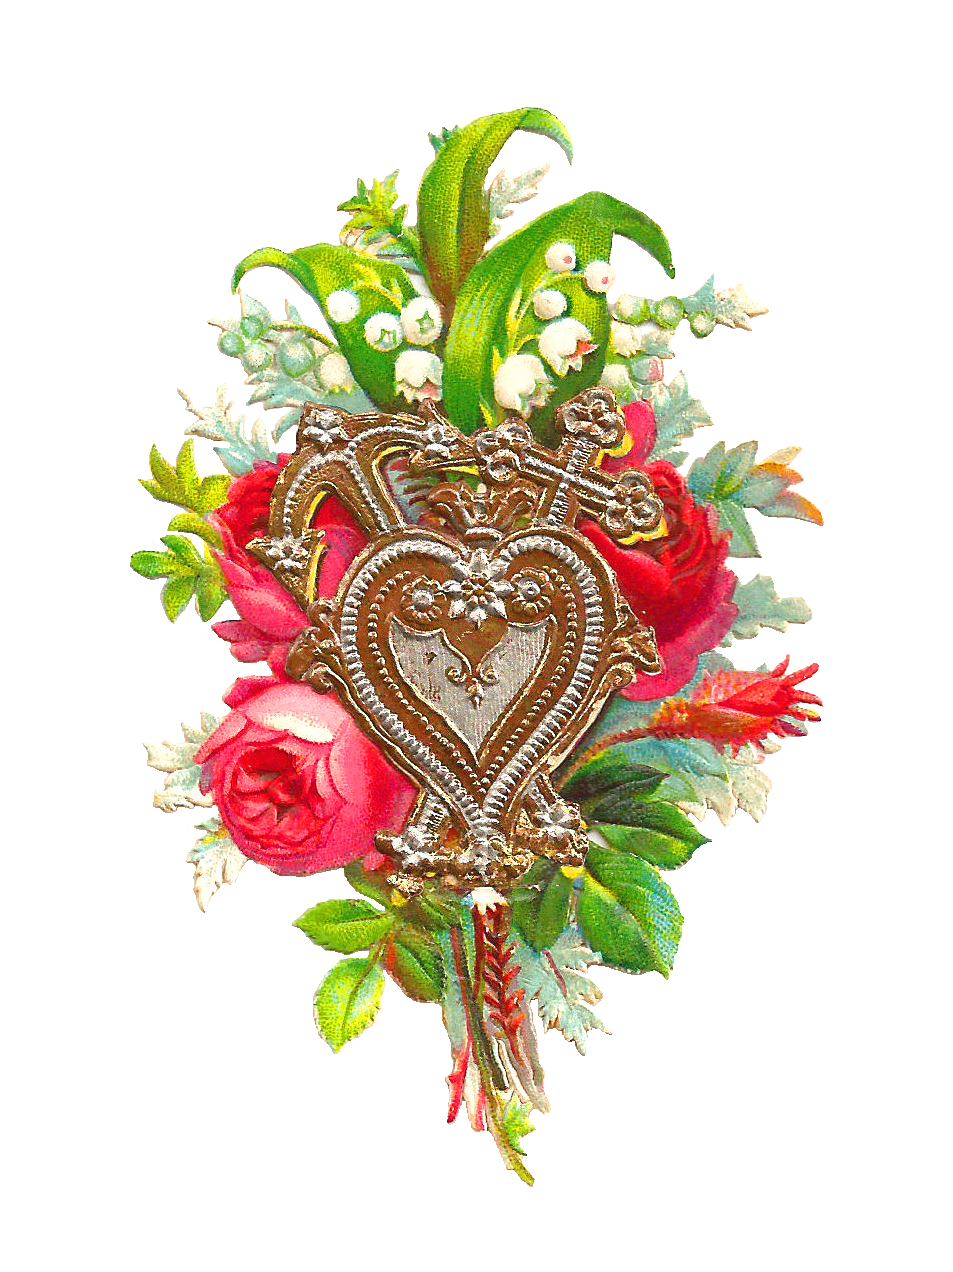 This Is A Beautiful Victorian Scrap Of Red Rose Bouquet And Lovely Design Heart Two Crosses I Love The Pretty Contract Between Colorful